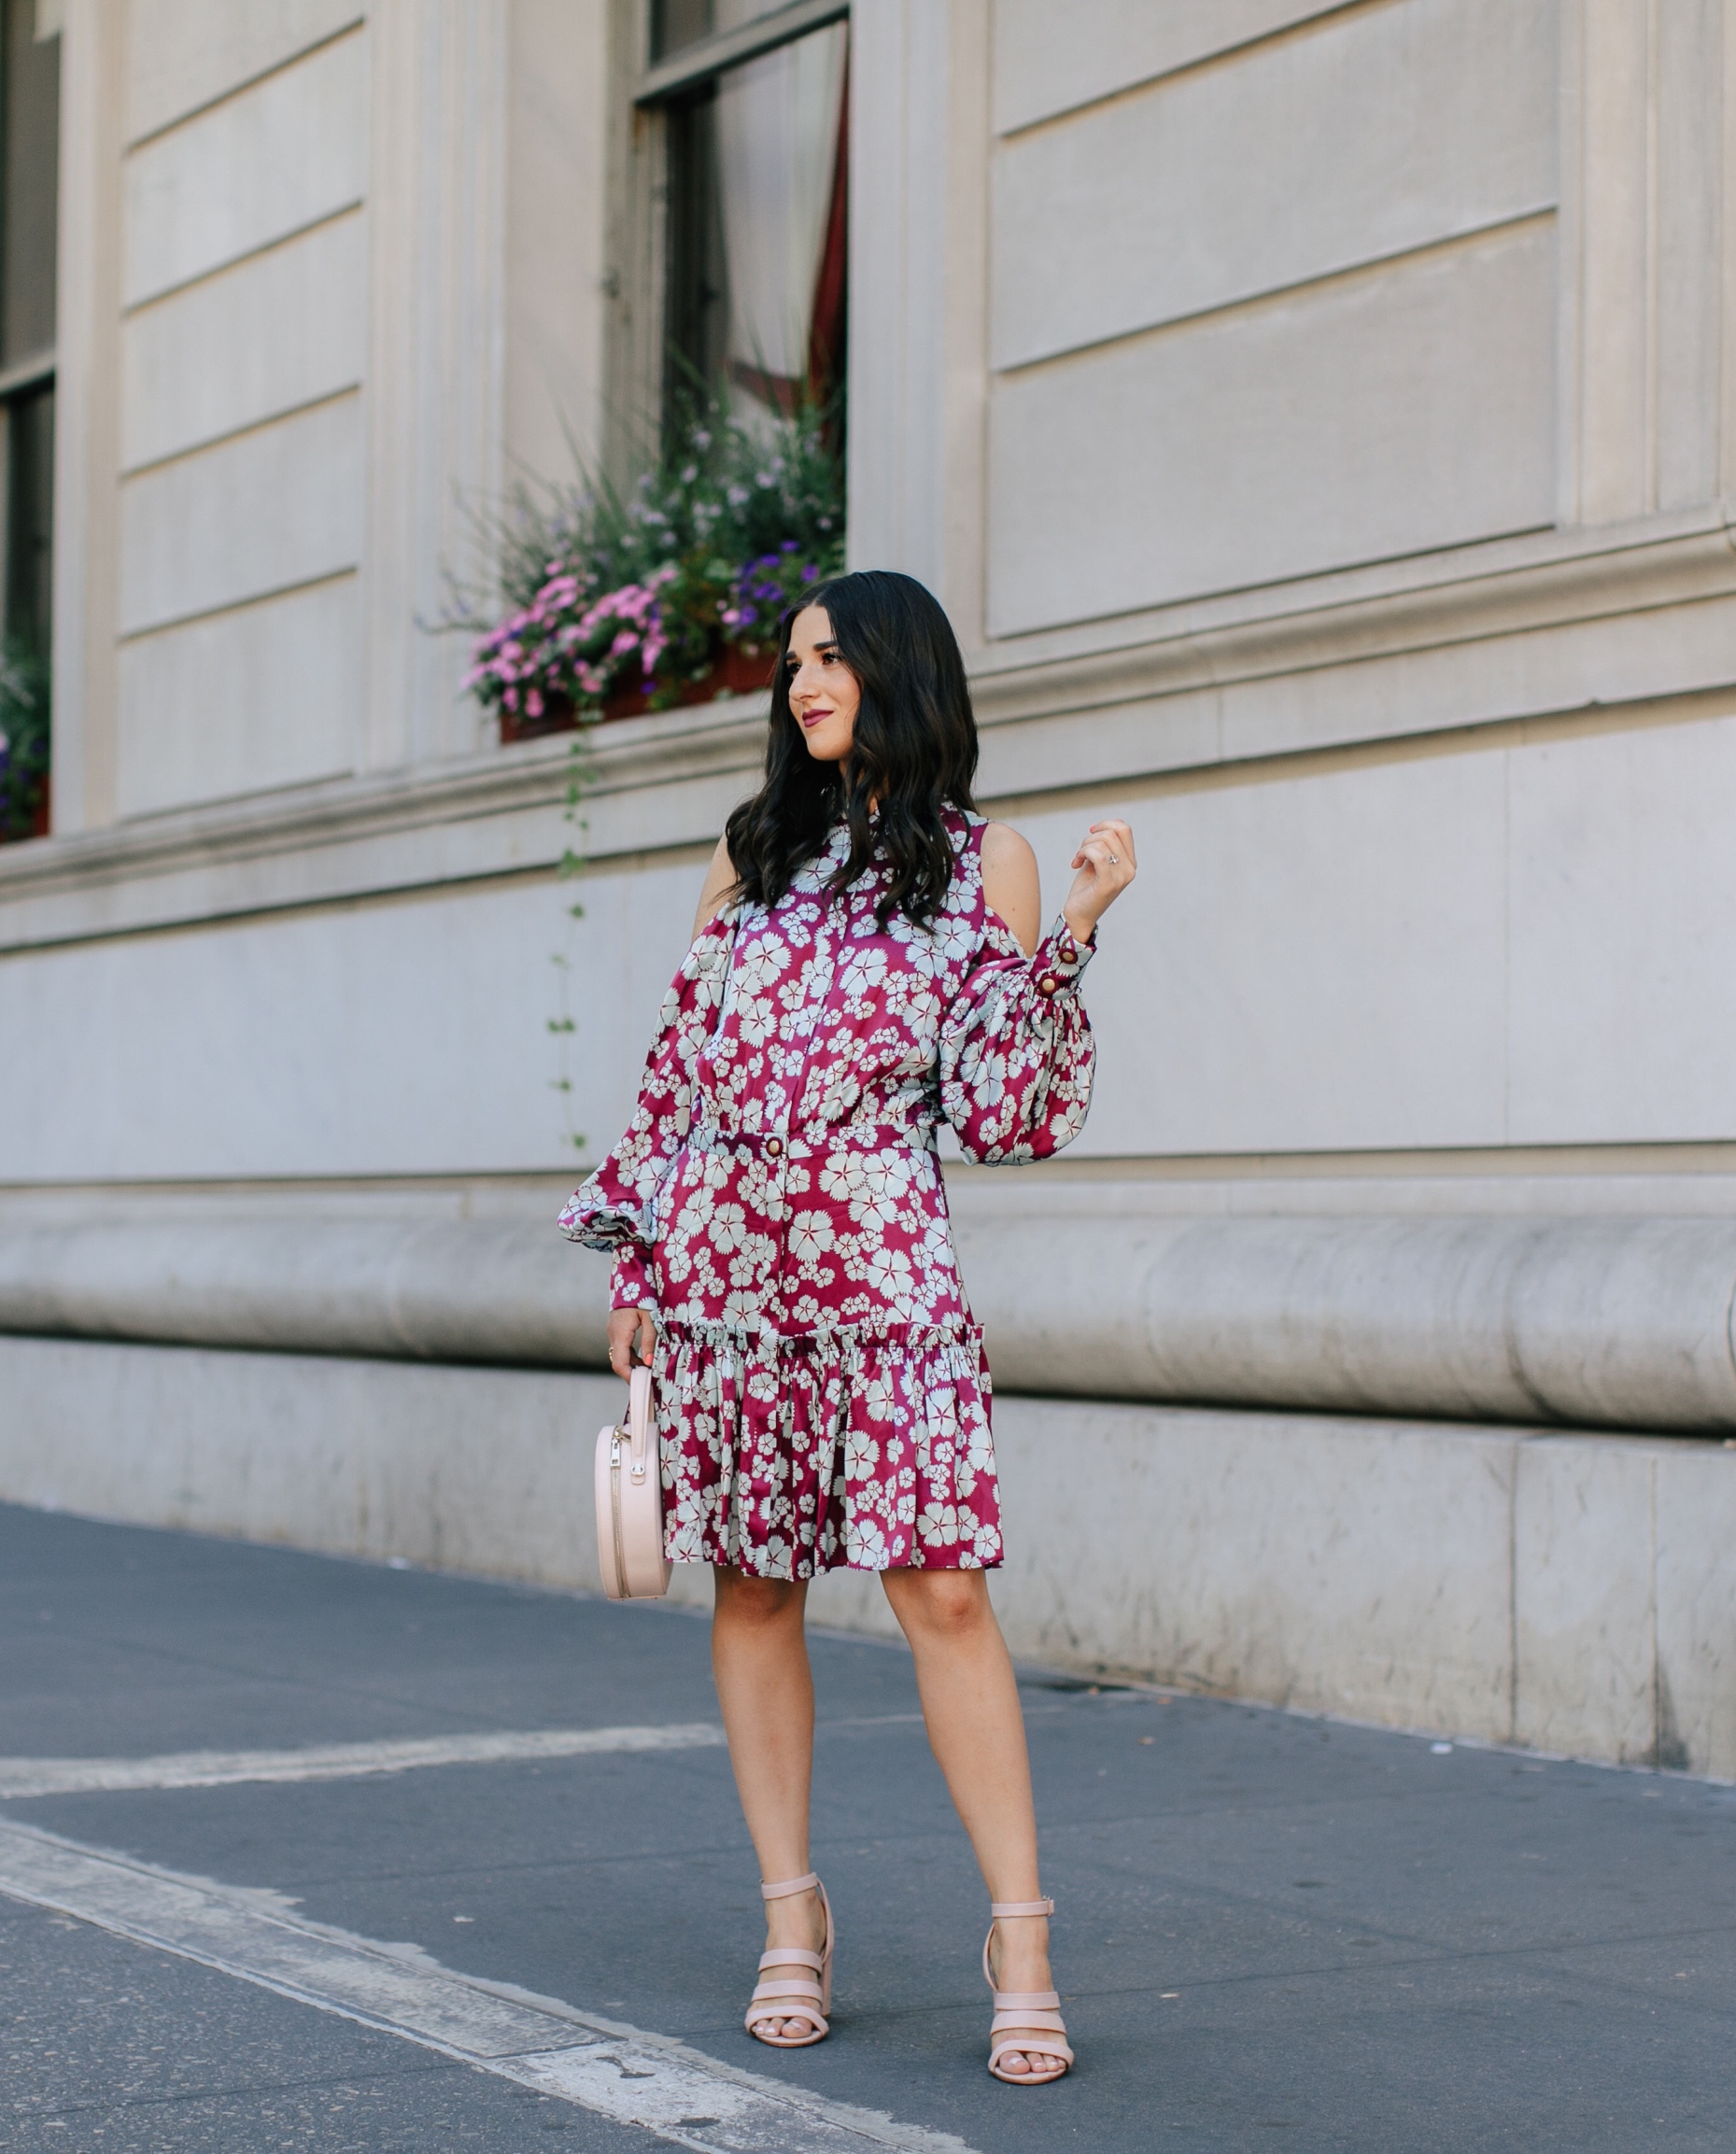 A Blogger's Guide To Turning Your S.O. Into Your Photographer Cold Shoulder Floral Dress Esther Santer Fashion Blog NYC Street Style Blogger Outfit OOTD Trendy Designer Nordstrom Strappy Blush Pink Heels Circle  Bag Shopping Wavy Hair Diamond Jewelry.jpg